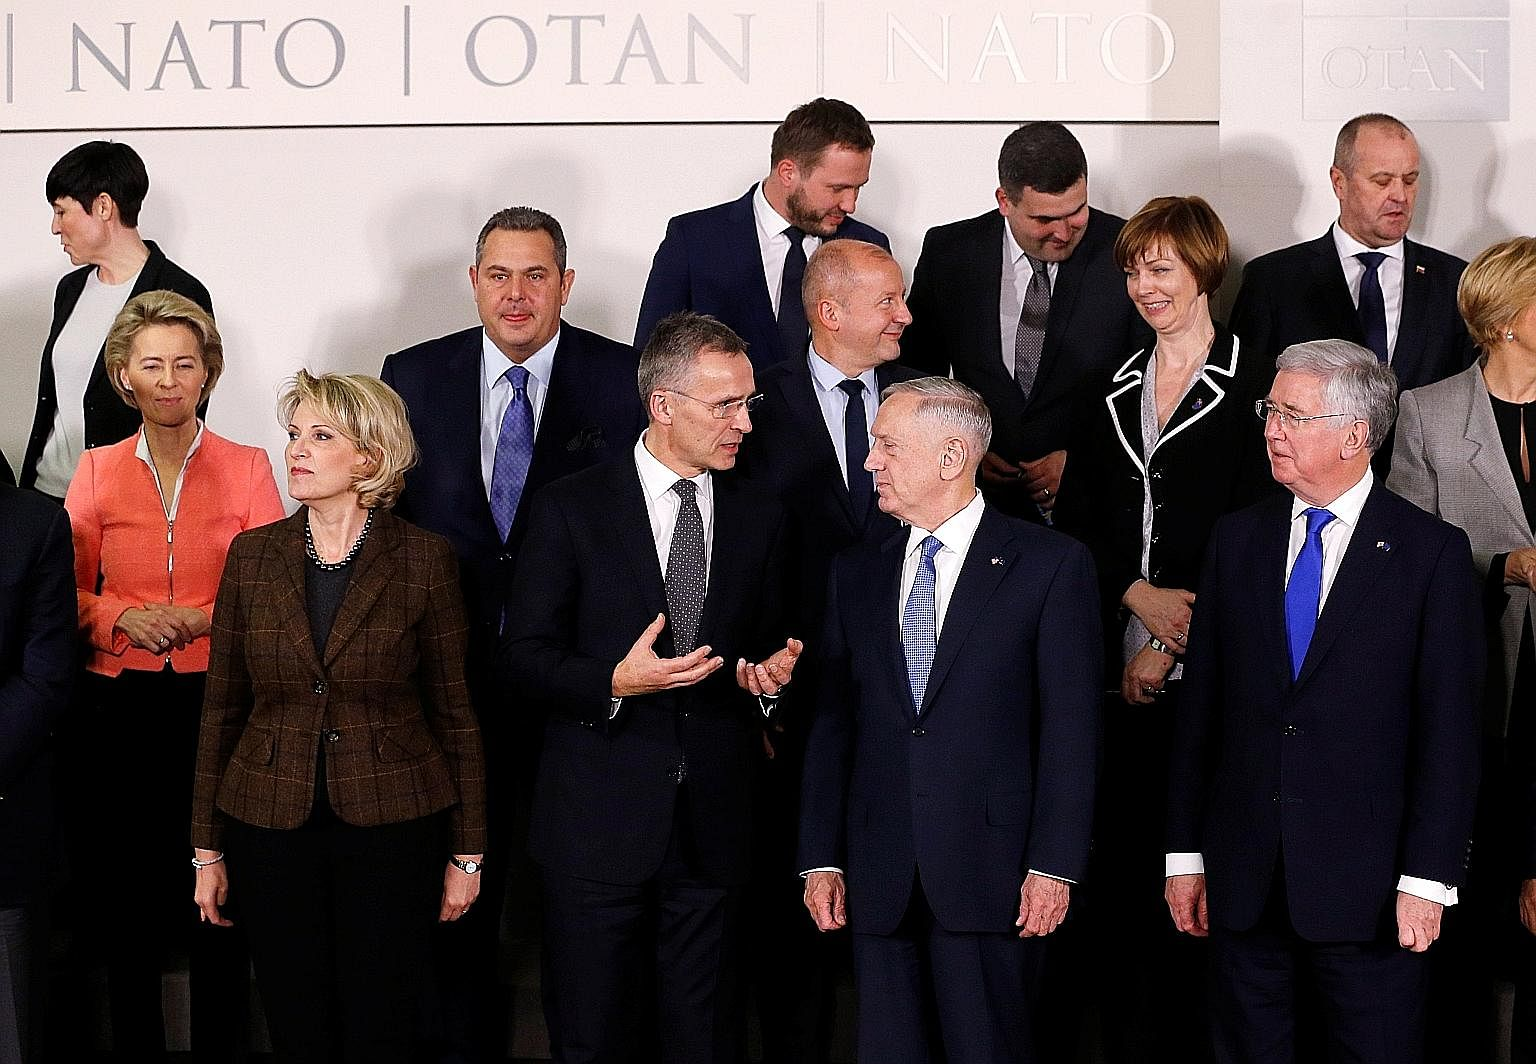 Nato Secretary-General Jens Stoltenberg (front row, second from left) speaking with US Defence Secretary James Mattis during a photo session with other Nato defence ministers at the alliance's headquarters in Brussels on Wednesday. Mr Mattis has the